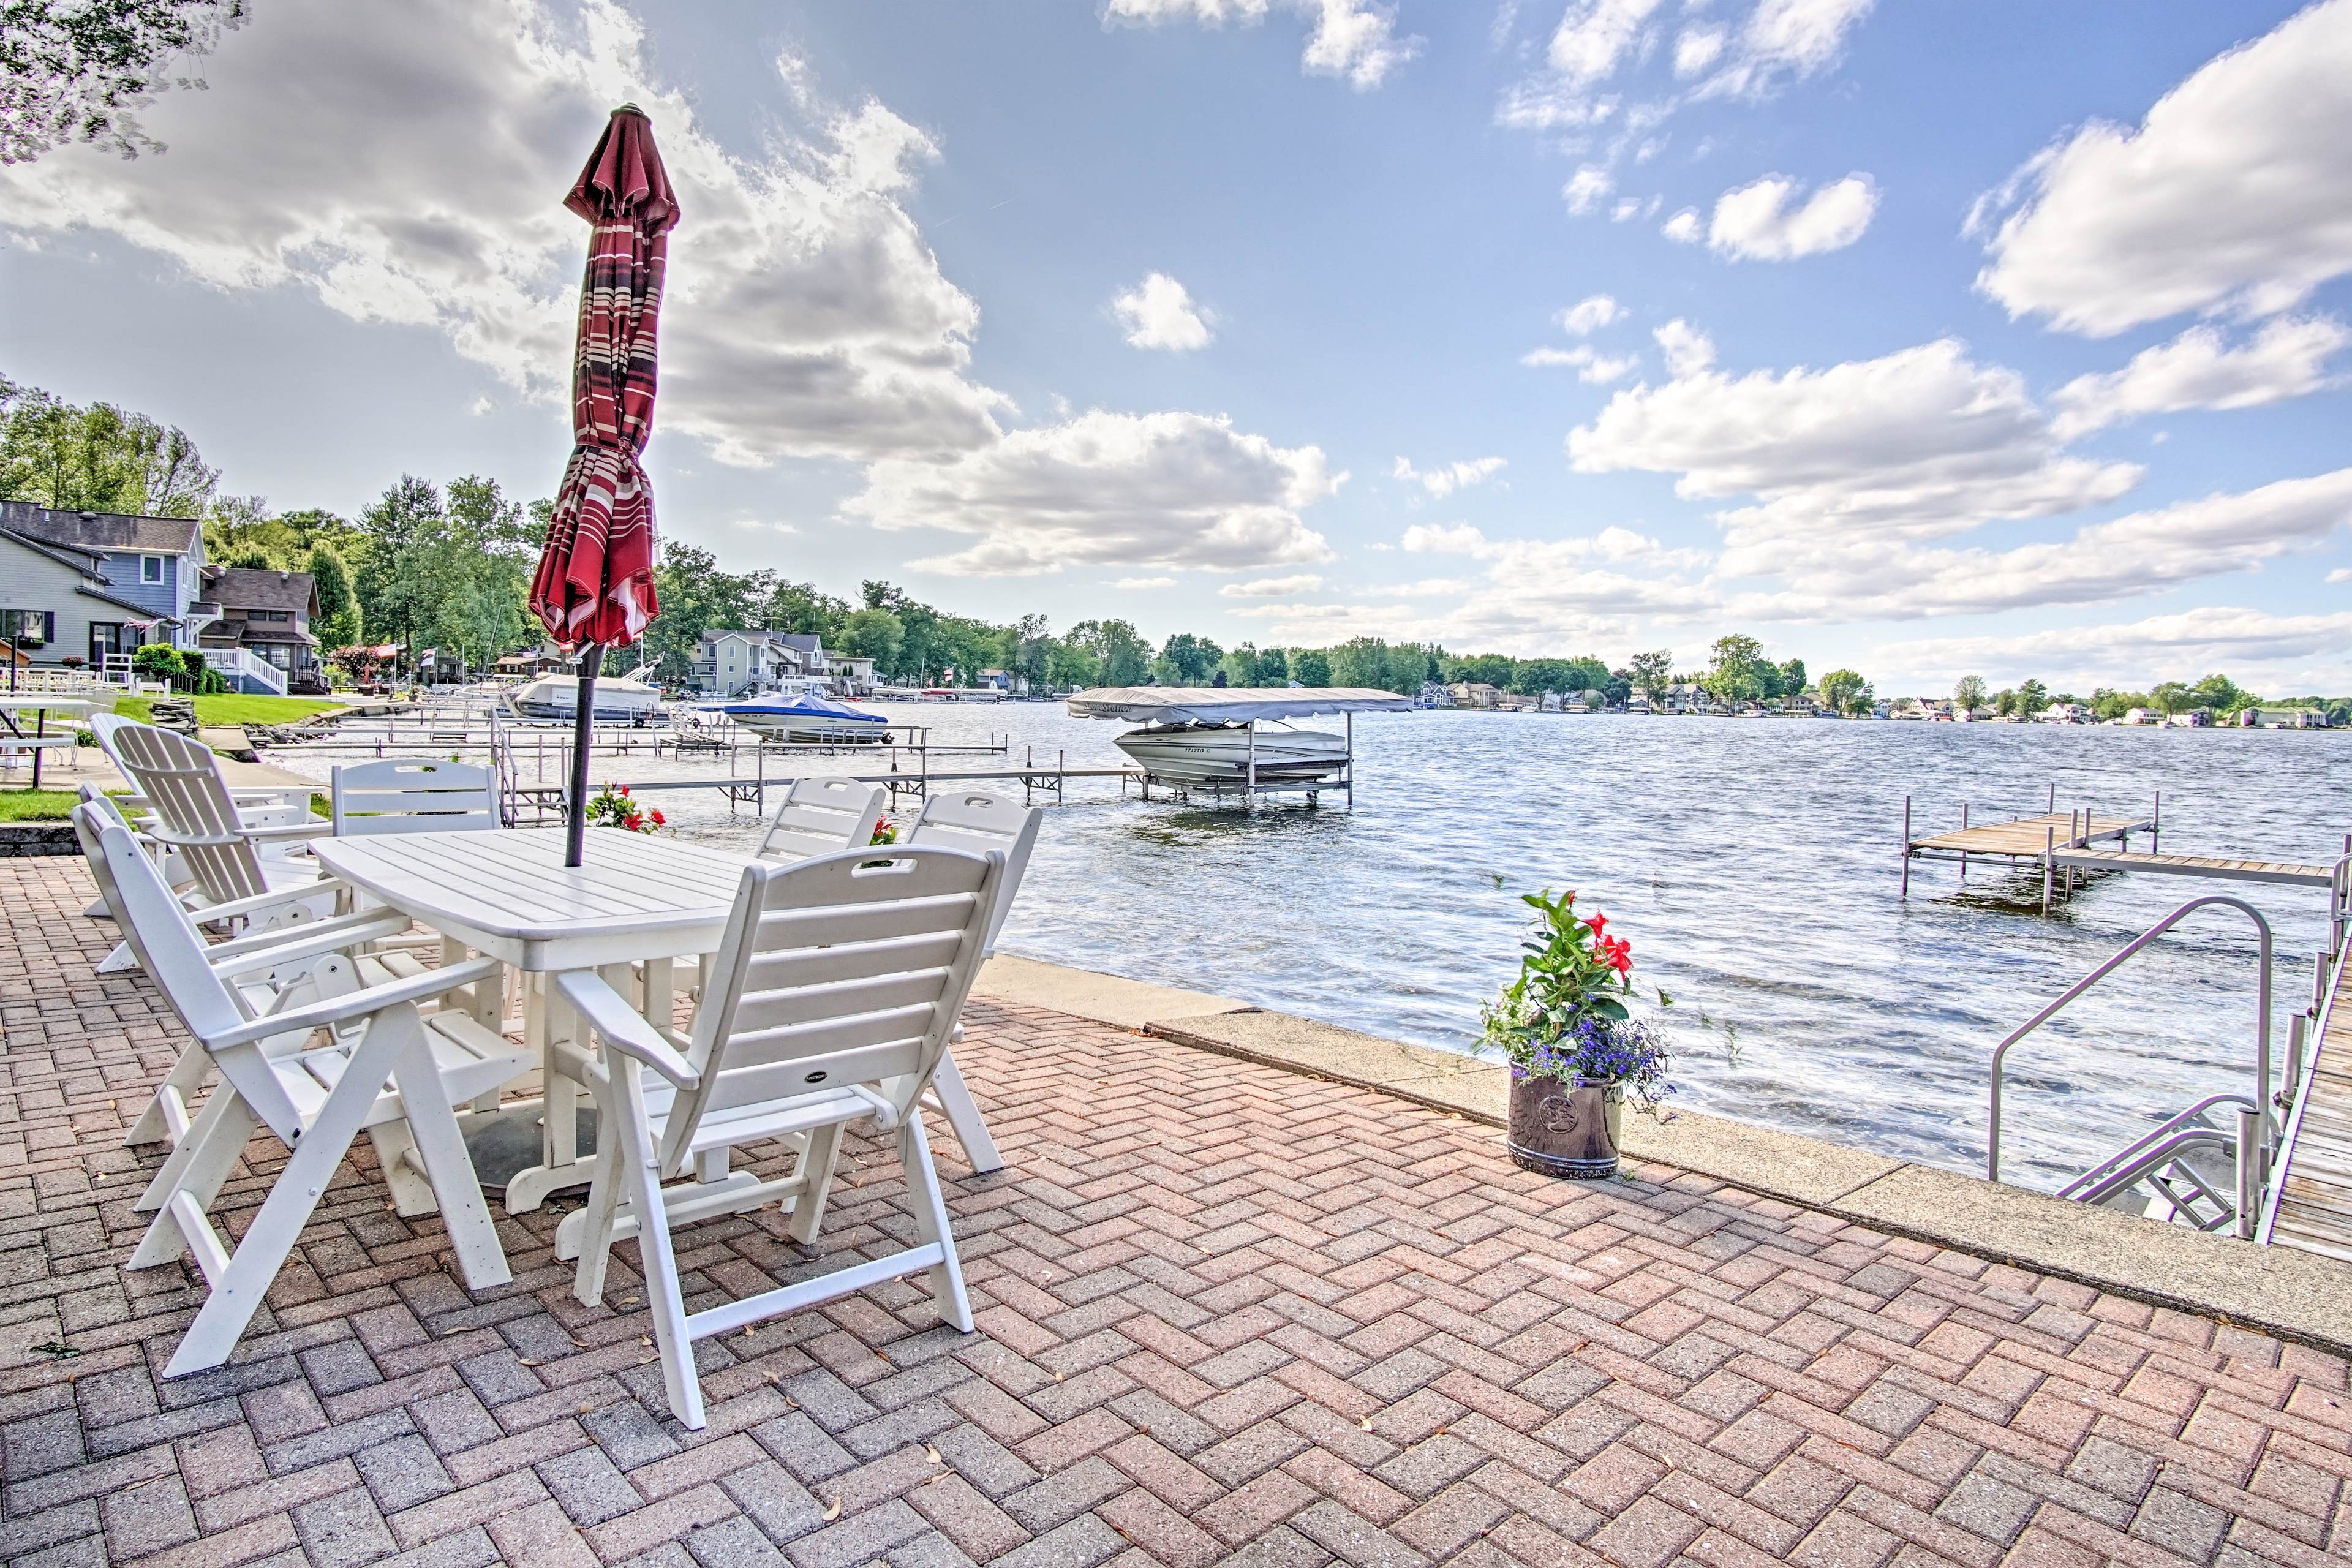 Fall in love with the lake at this vacation rental house!